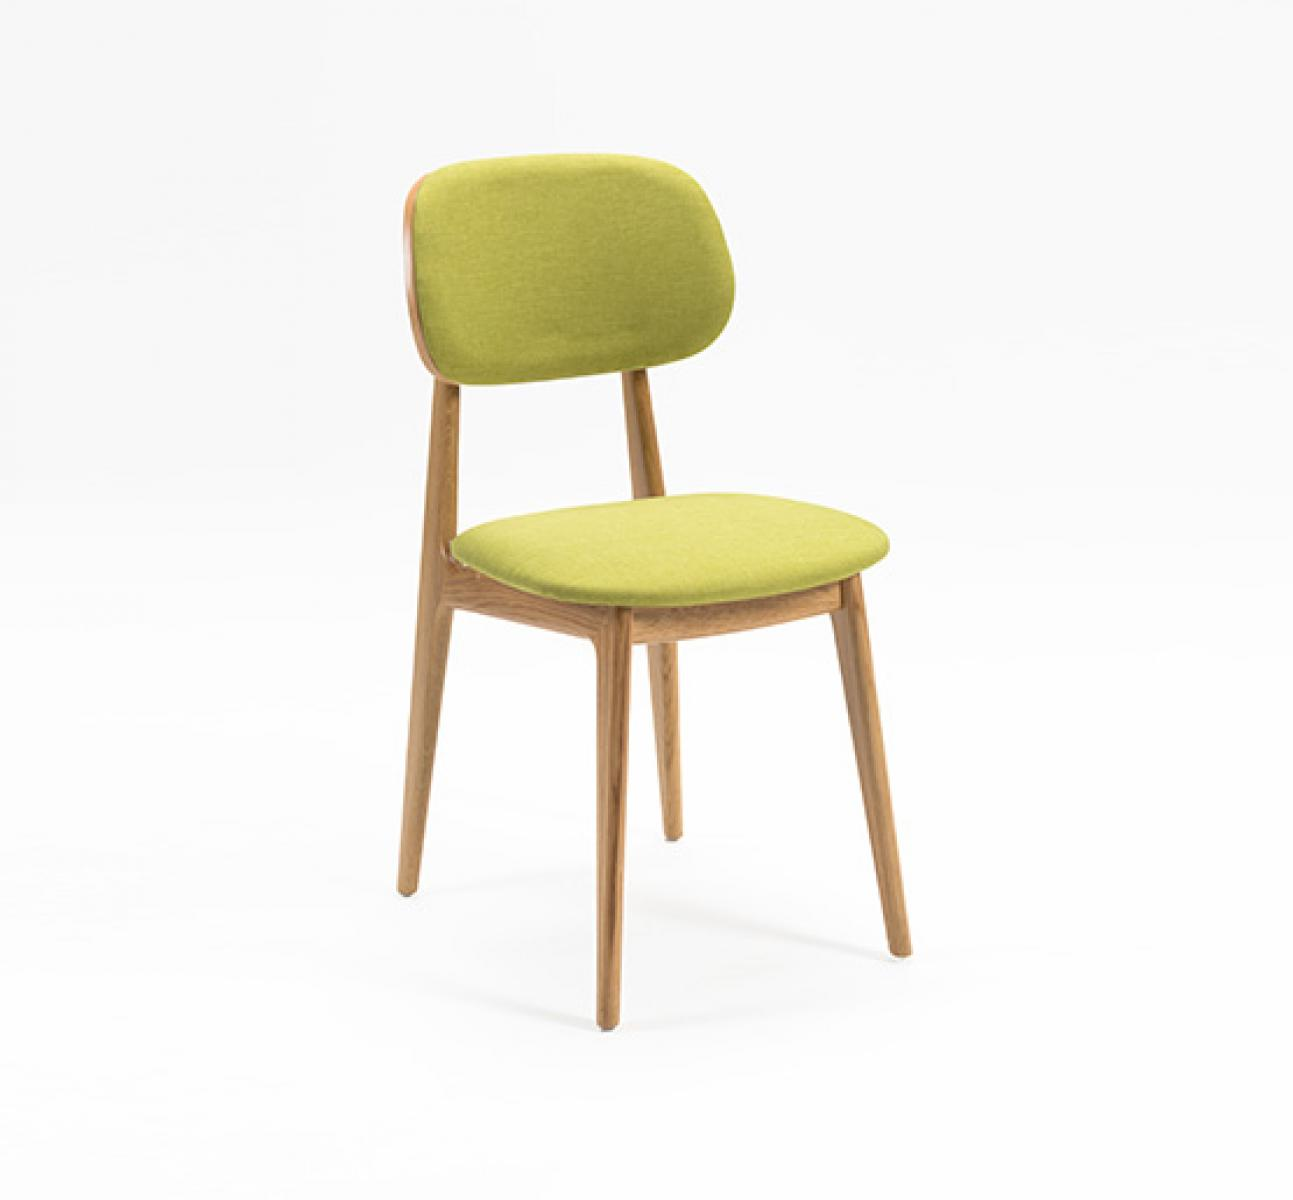 Wooden dining chair with green upholstery